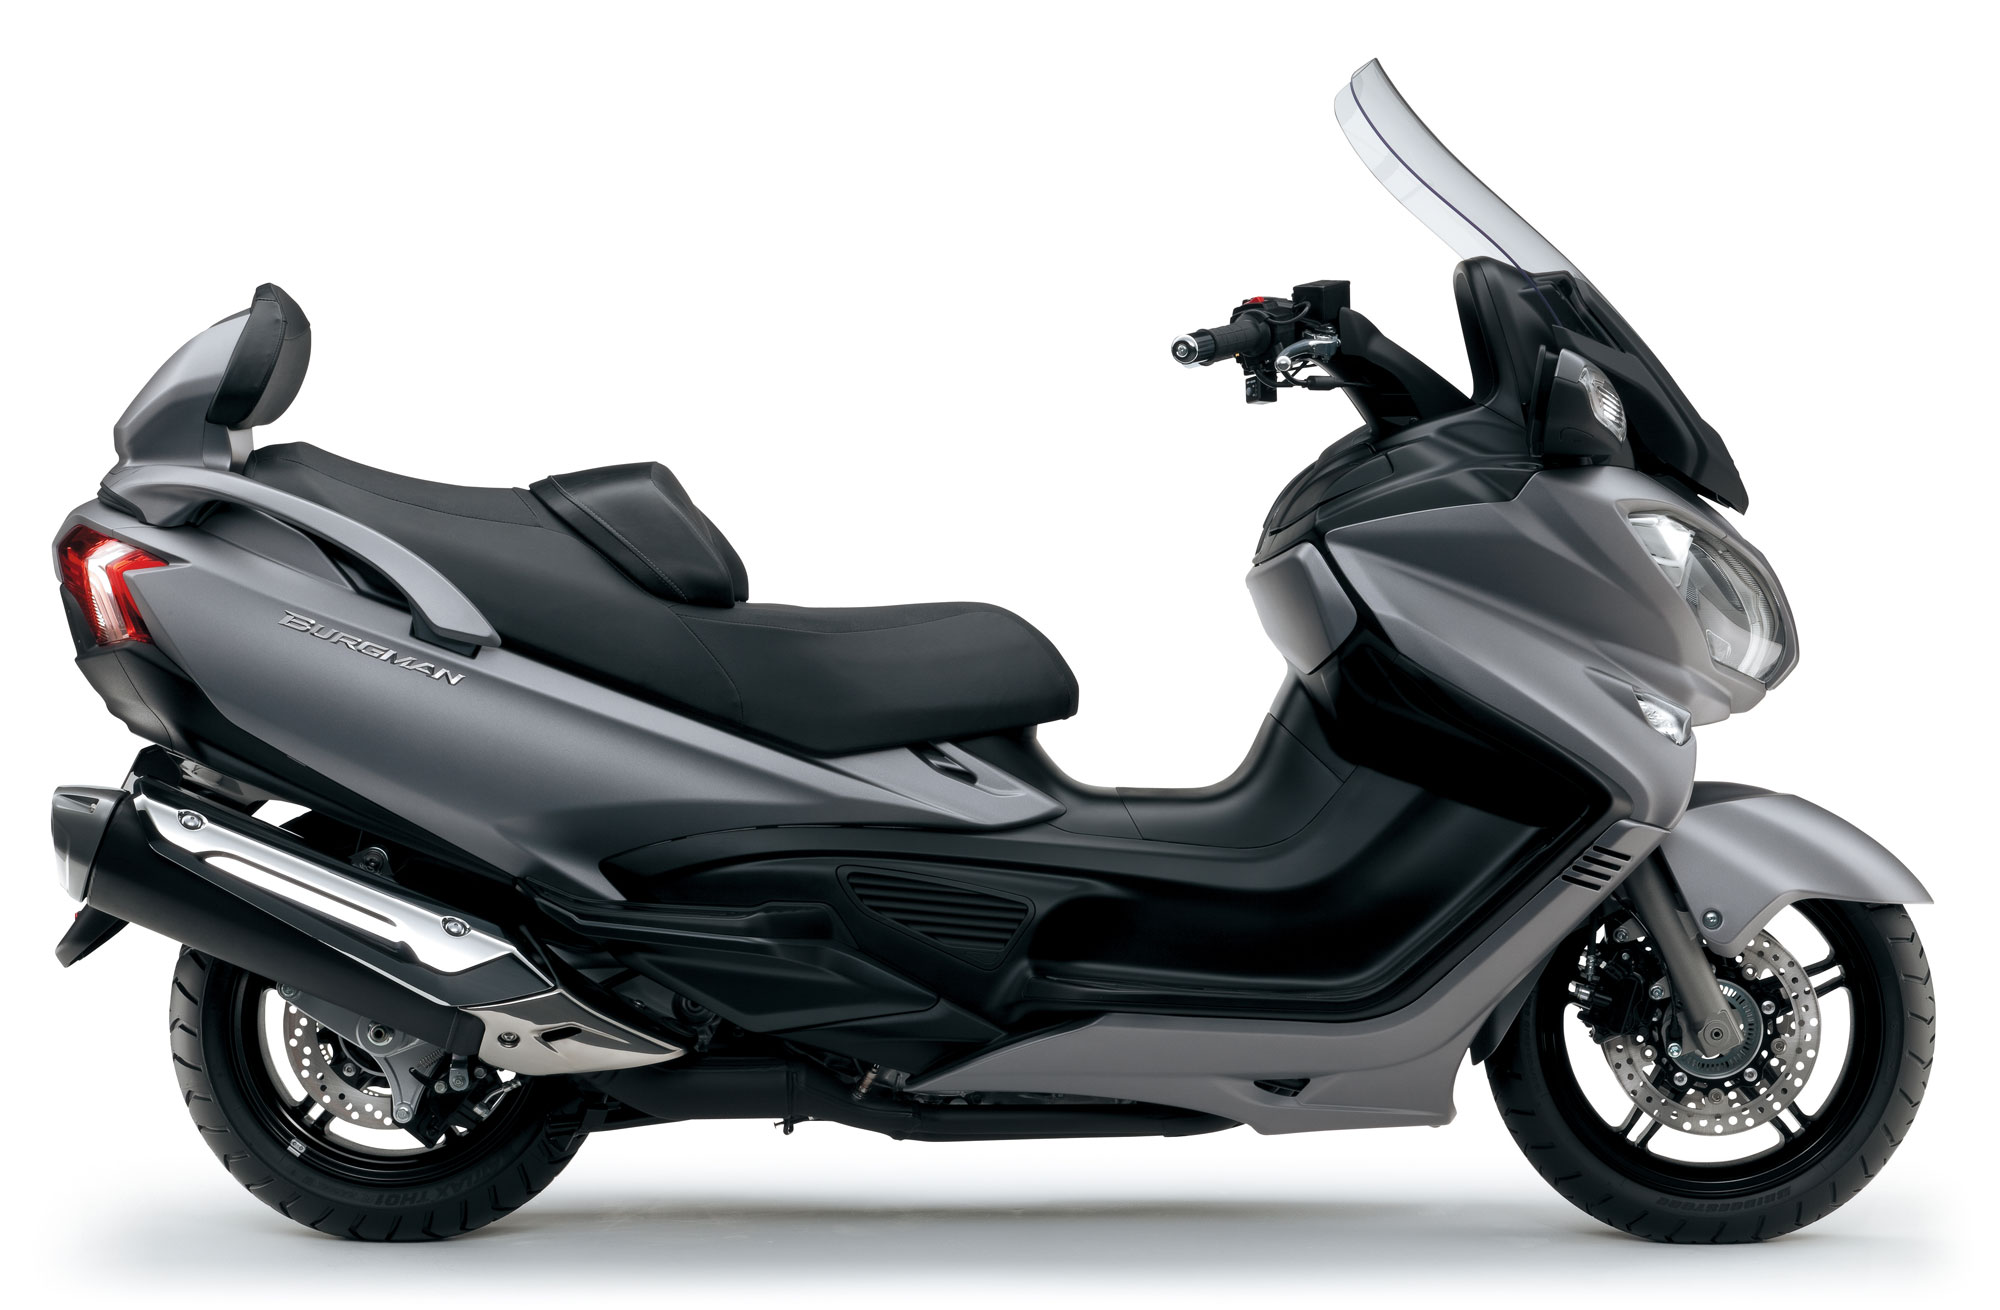 suzuki burgman 650 abs executive specs 2012 2013. Black Bedroom Furniture Sets. Home Design Ideas